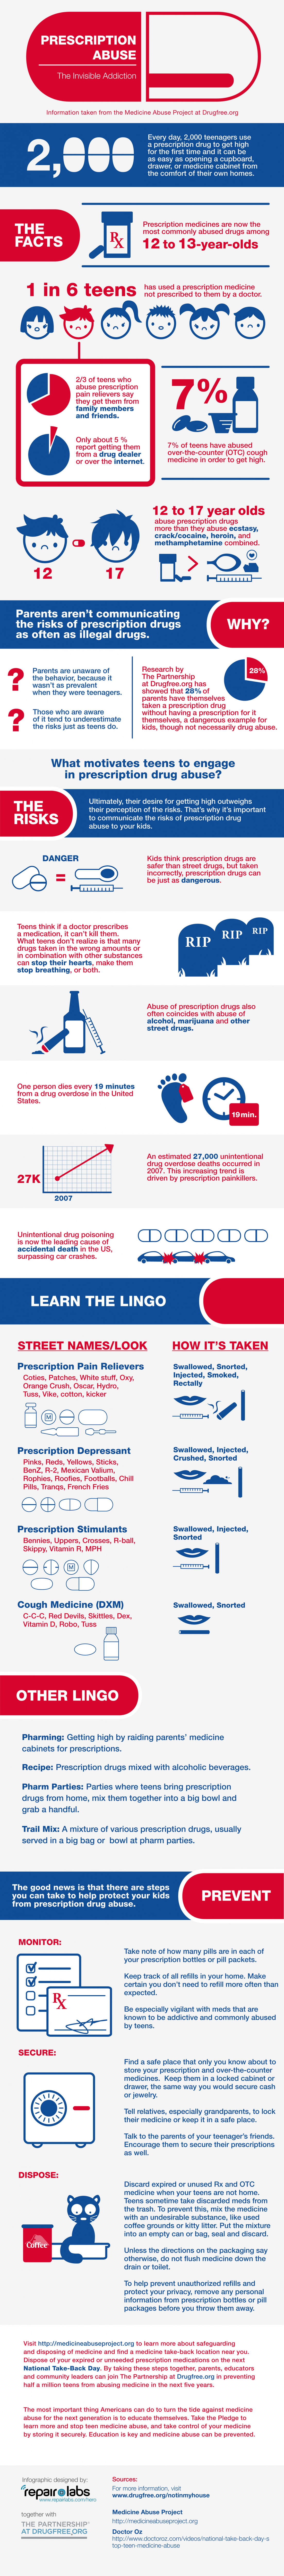 Prescription Abuse (The Invisible Addiction) Infographic